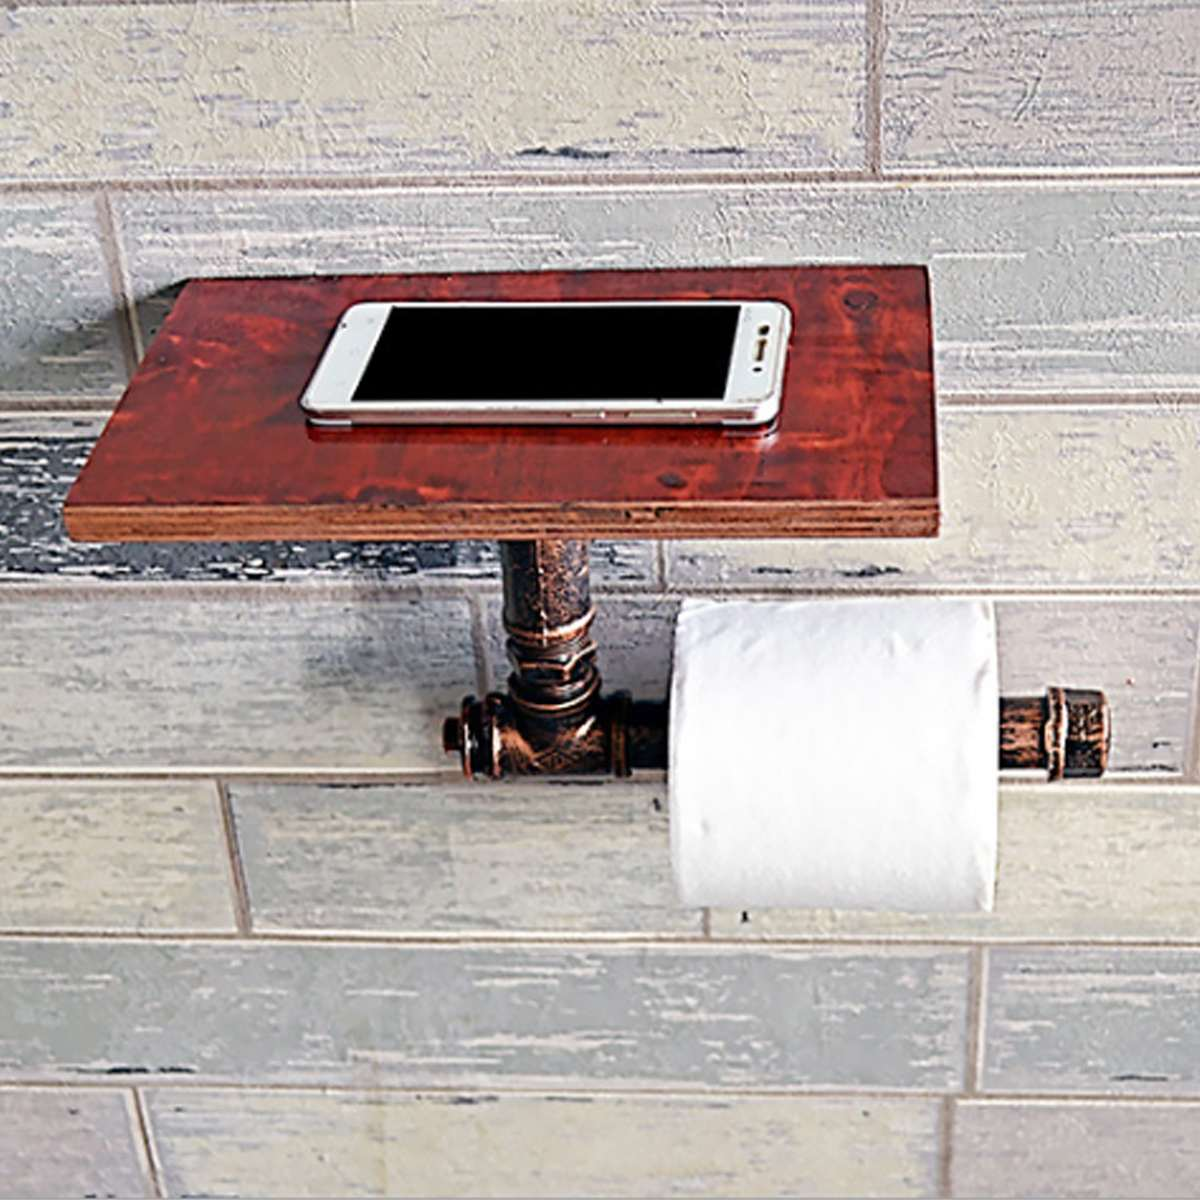 Paper Holders Generous Toilet Paper Holder Metal+wood Kitchen Wc Paper Holder Industrial Retro Wall Mount Metal Pipe Toilet Paper Holder Roller Home Improvement